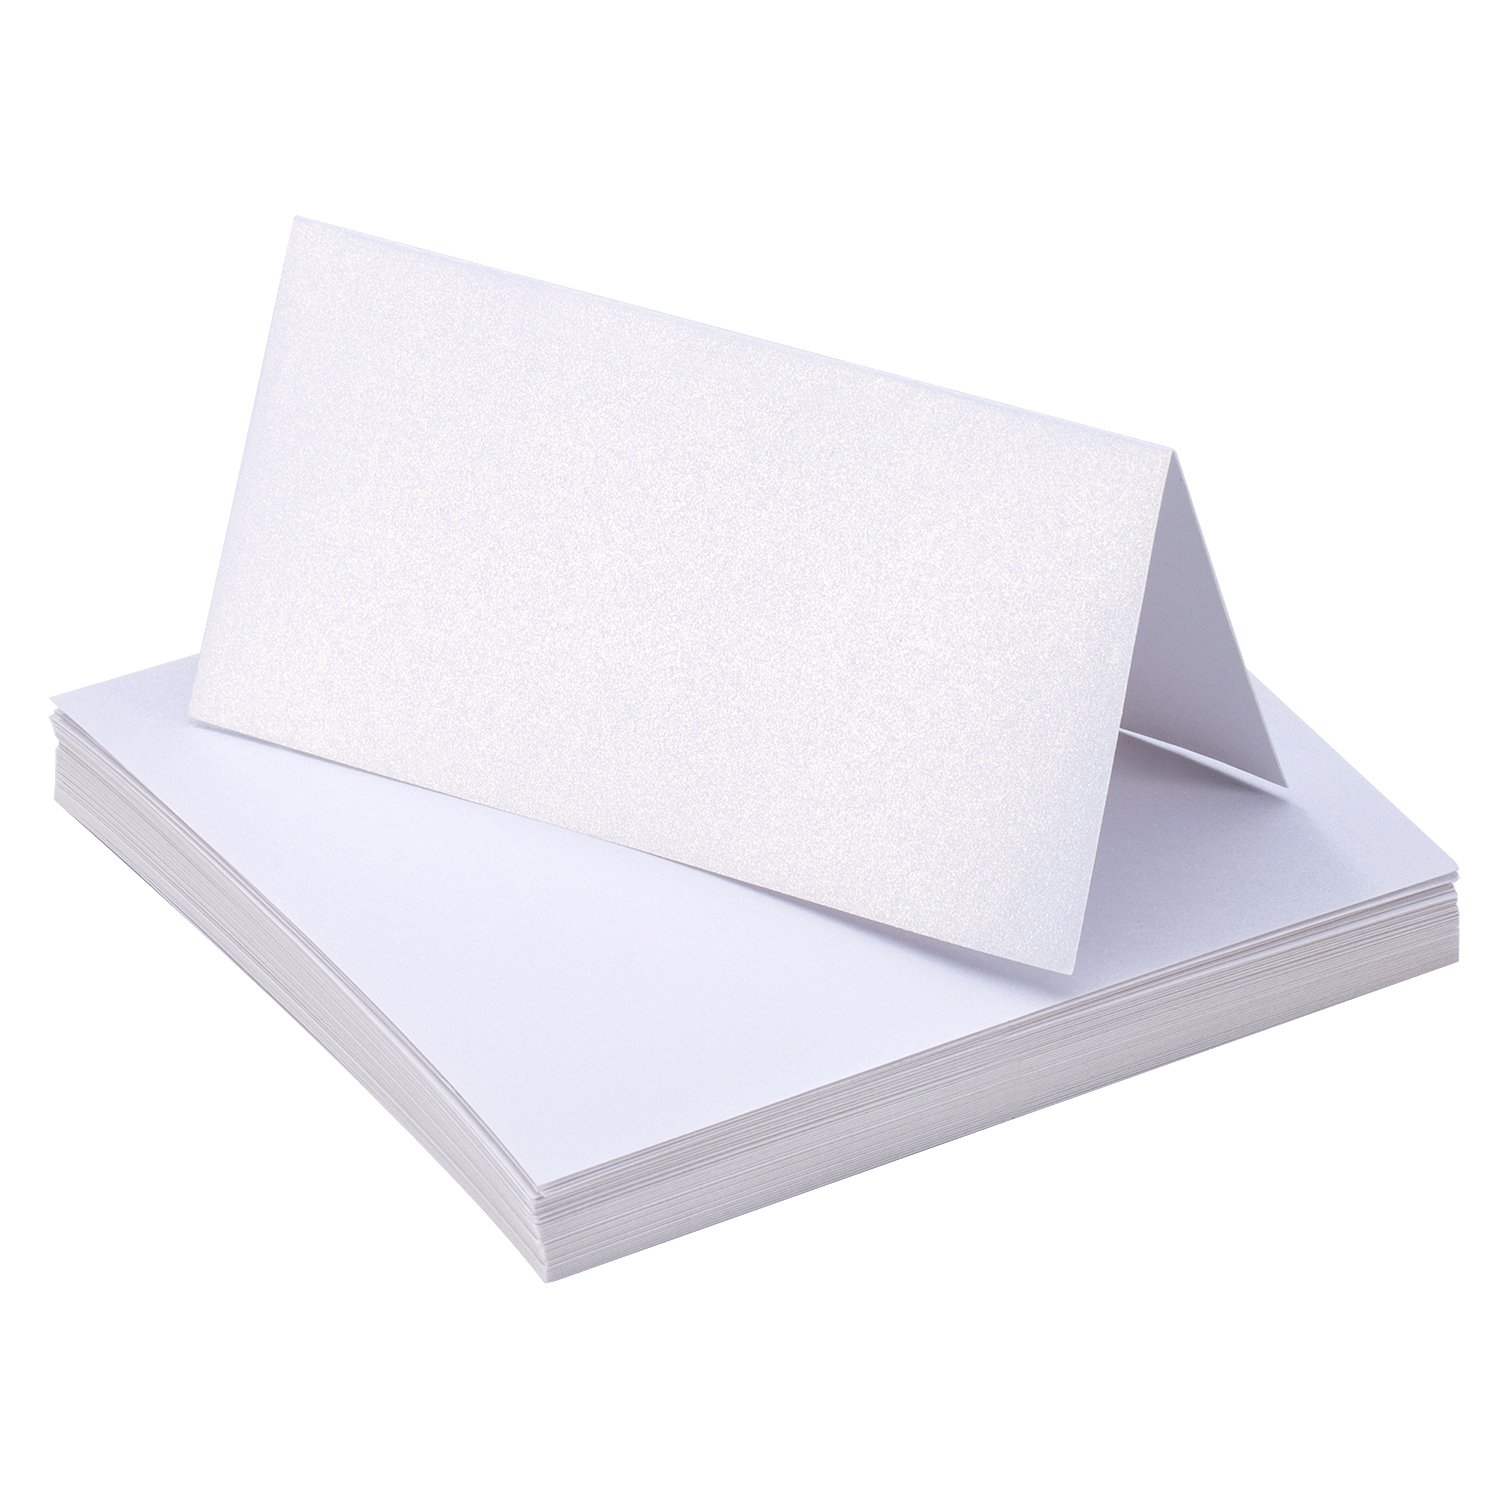 50 Pieces White Table Cards Name Place Cards for Wedding Party Decoration Bememo